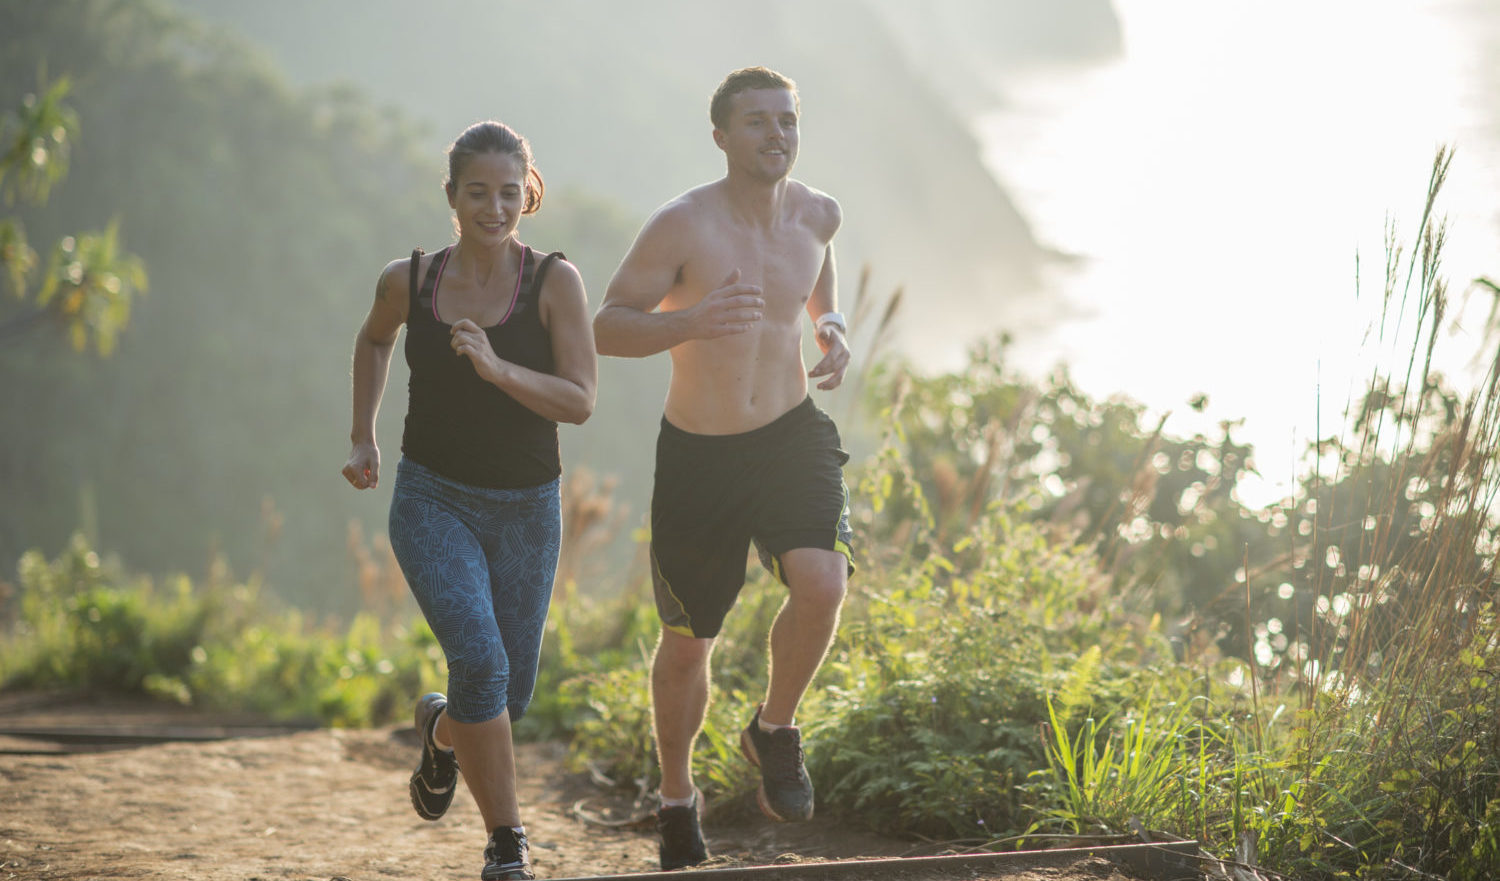 A boyfriend and girlfriend are trail running together in the Hawaiian mountains while on vacation.